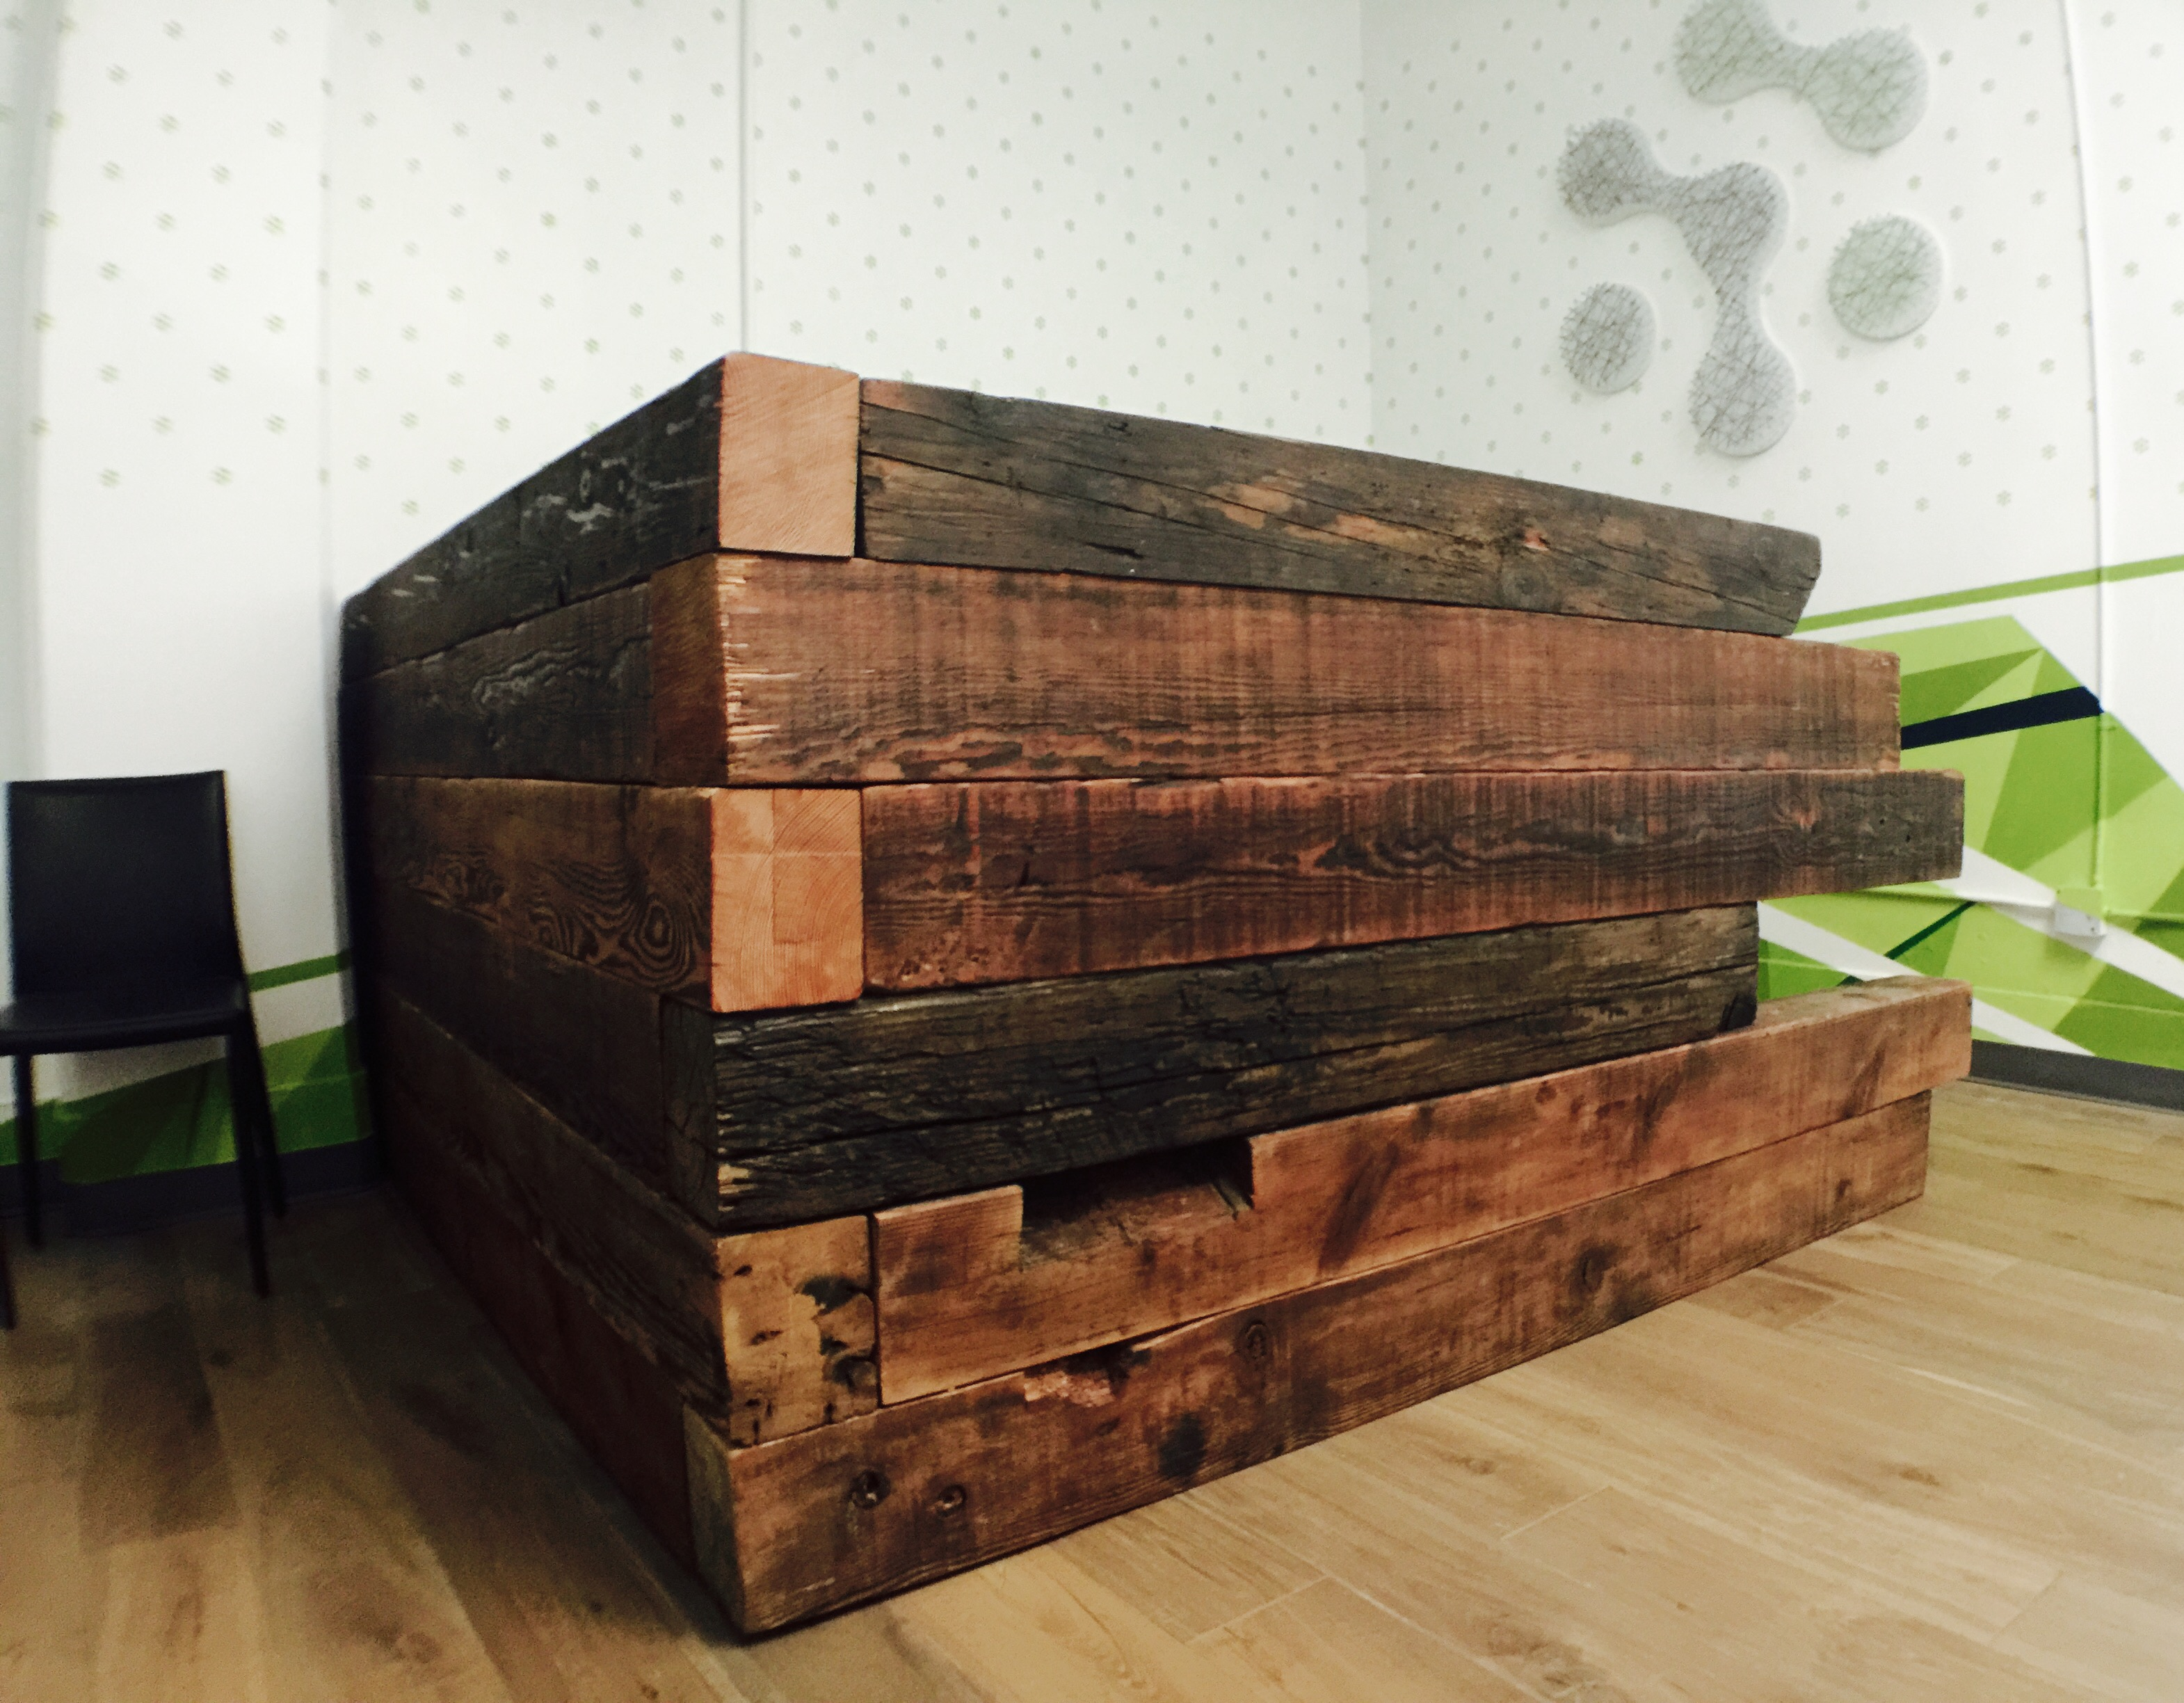 RECEPTION DESK WITH A HEAVY WEIGHT